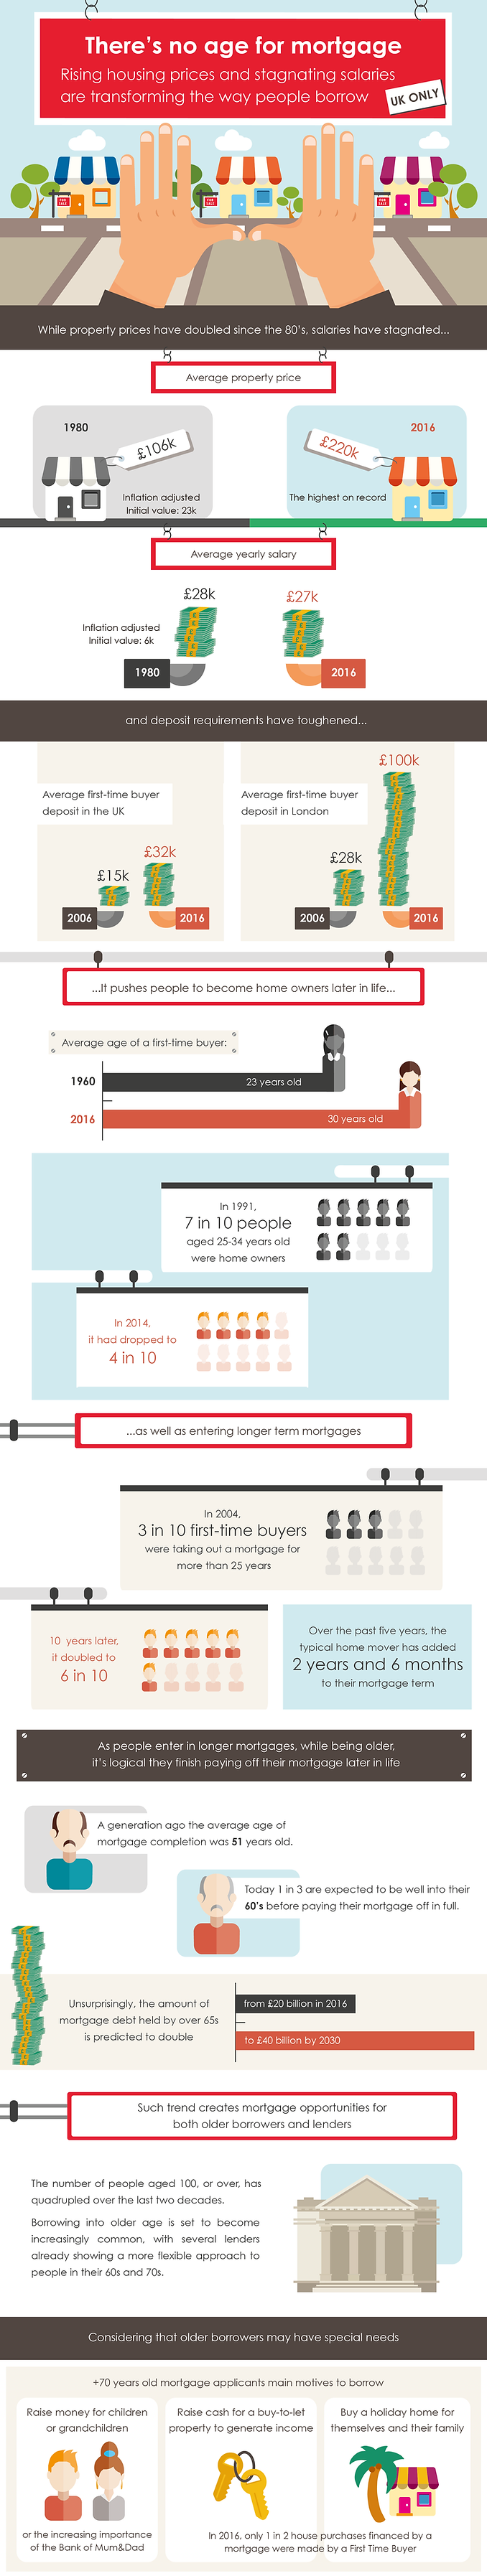 infographic mortgage house price borrow money data visualisation